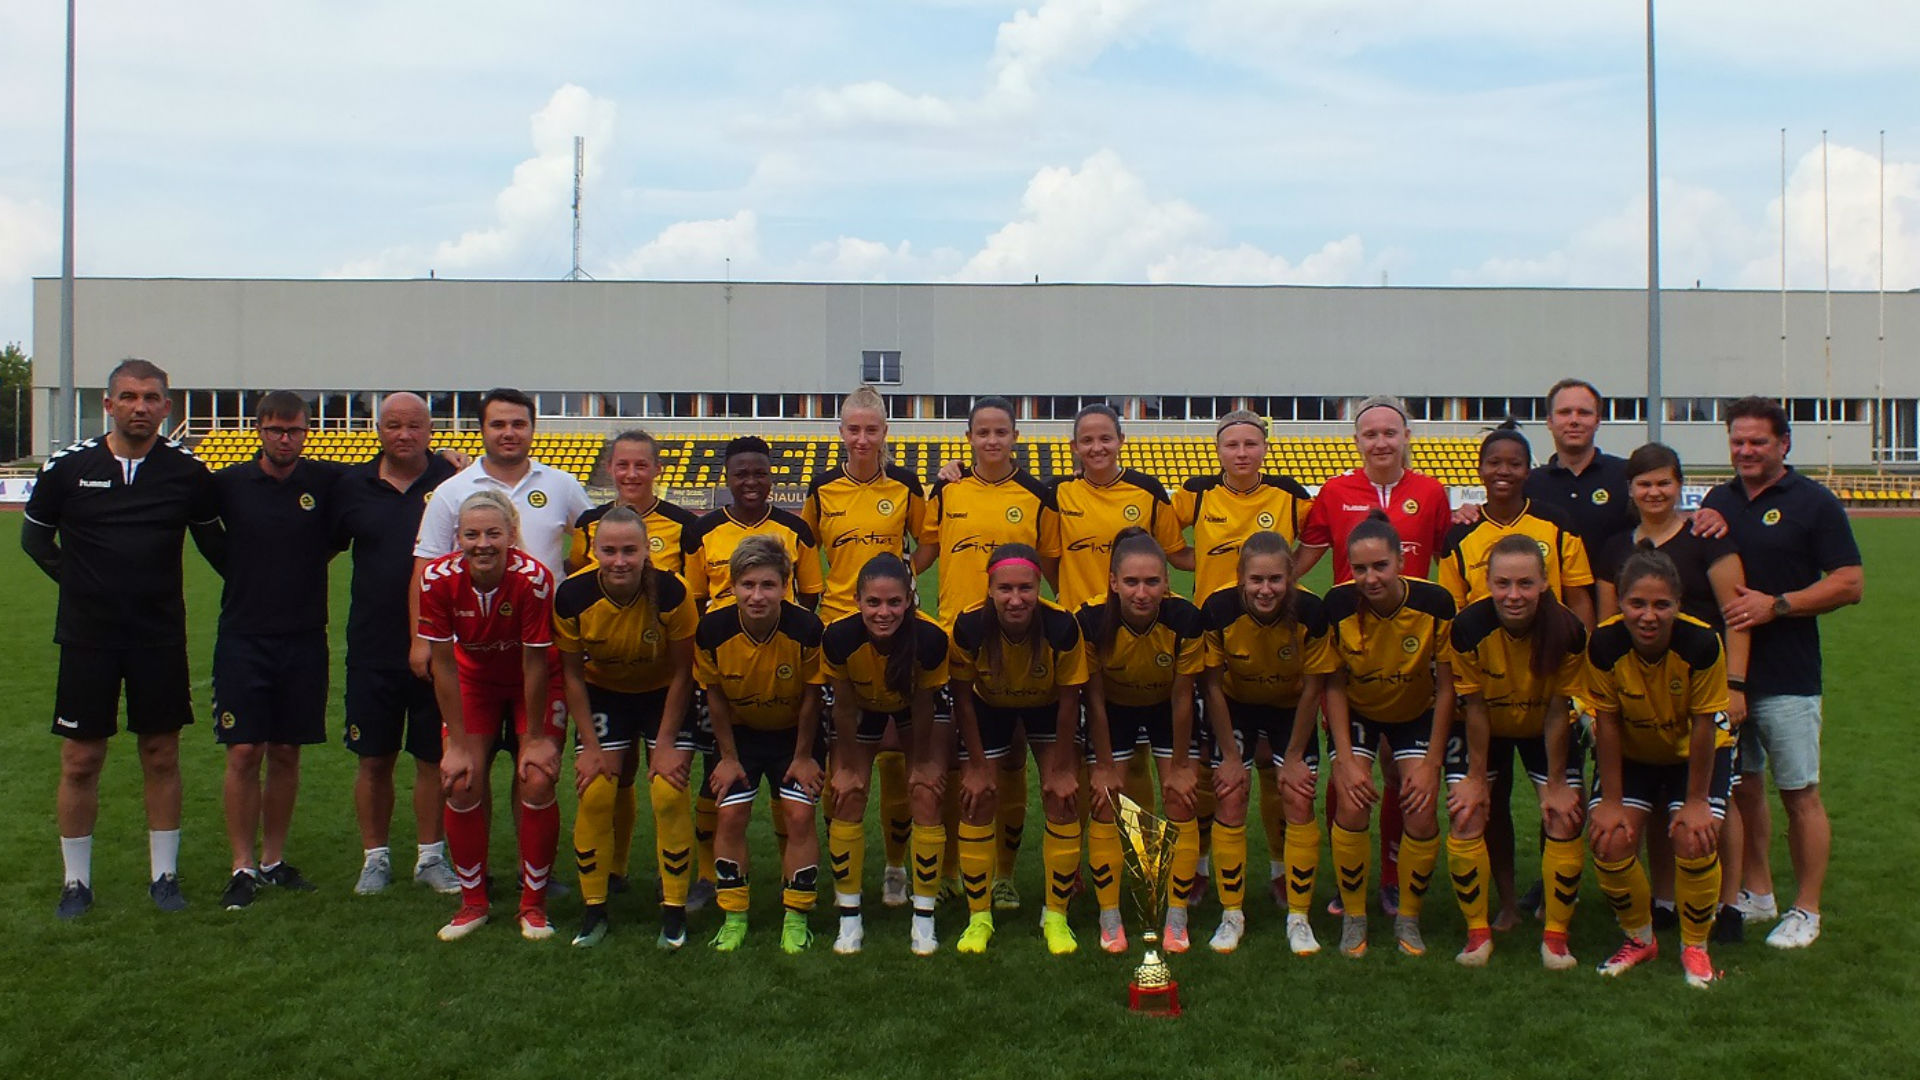 Nothando Vilakazi and Jermaine Seoposenwe help Gintra-Universitetas reclaim Amber Cup